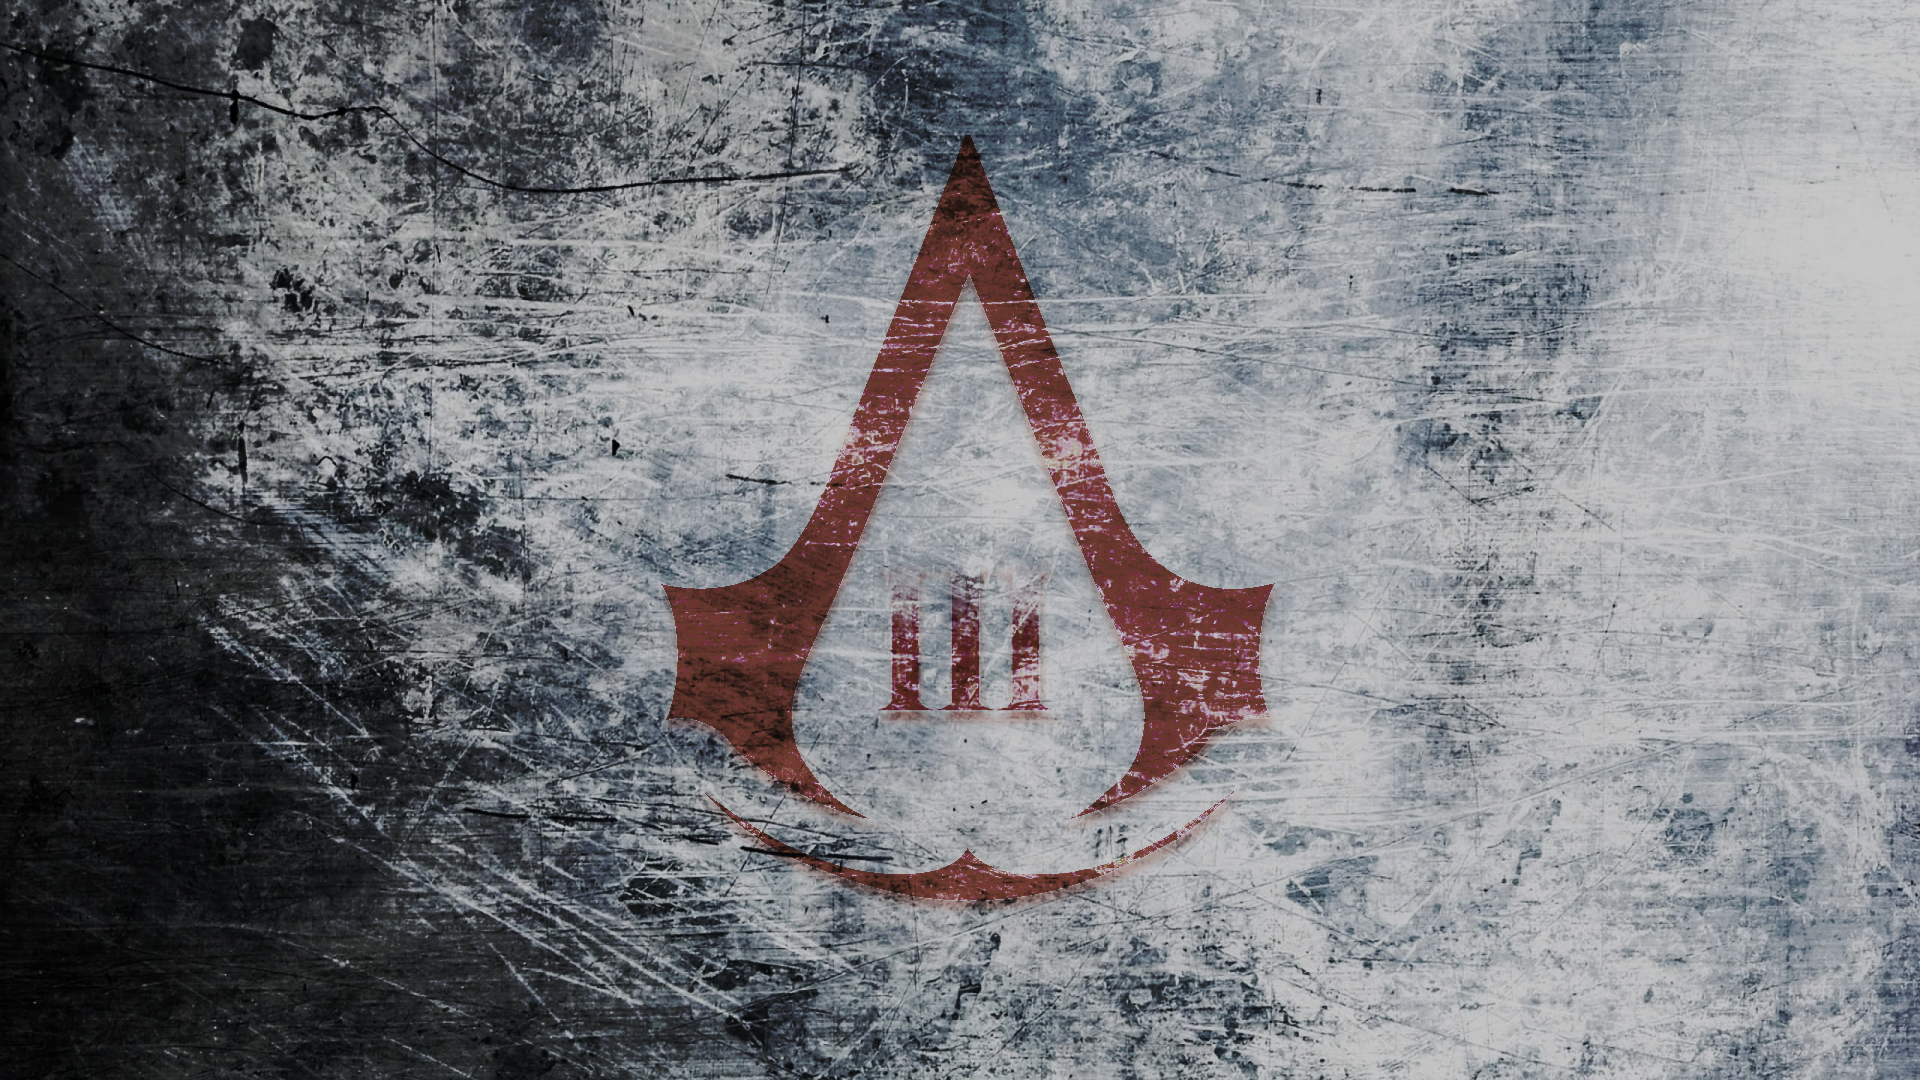 assassins creed logo pngAssassins creed 3 wallpaper 1920x1080 by 1920x1080